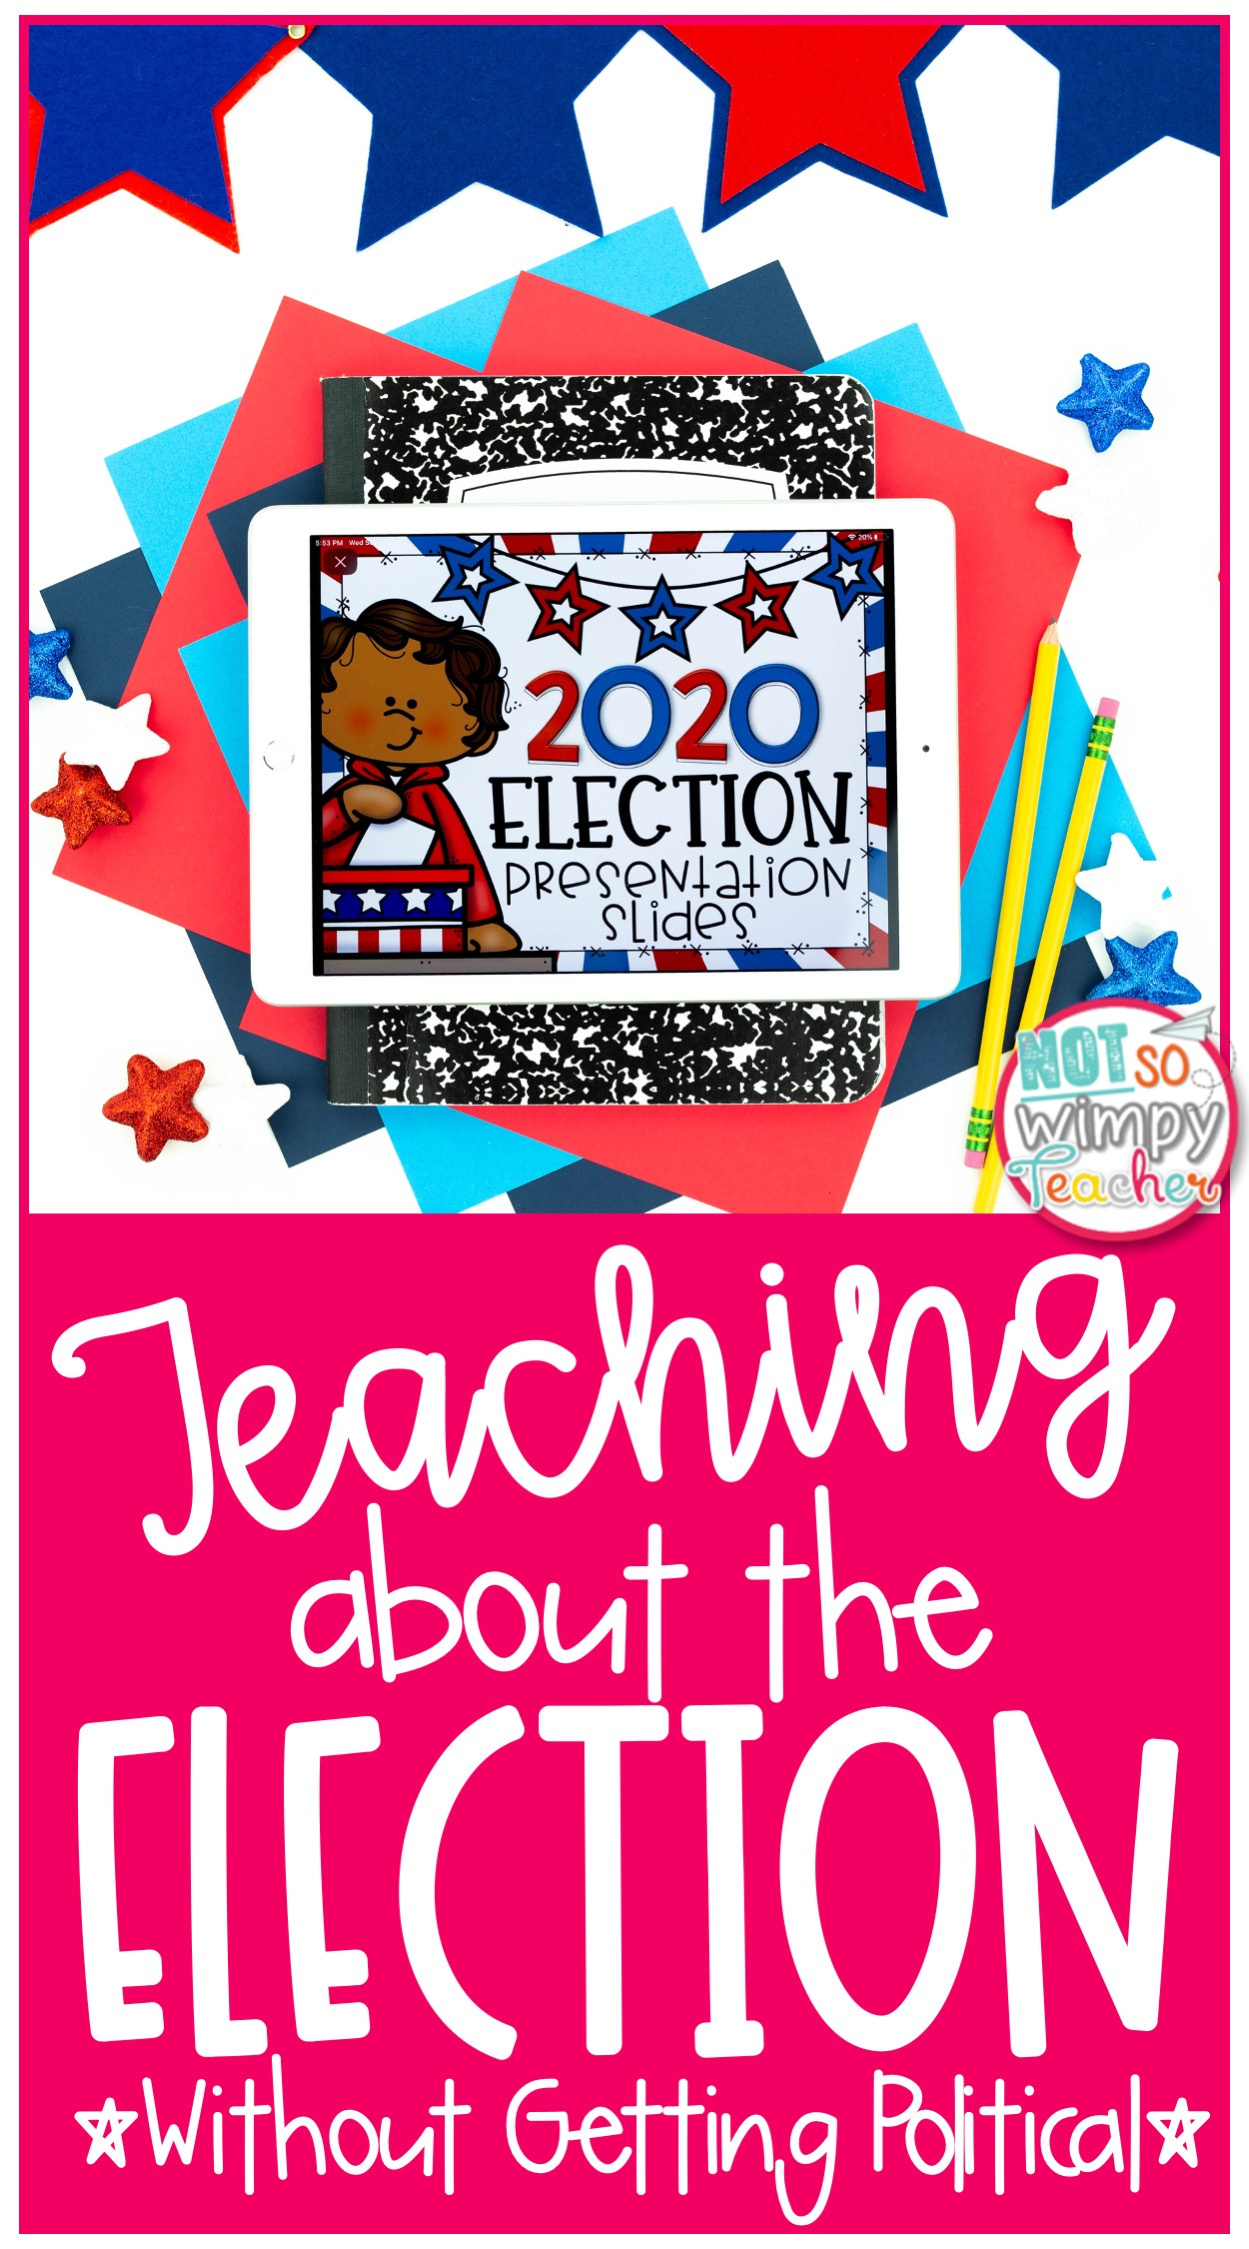 ipad featuring digital election activity for kids